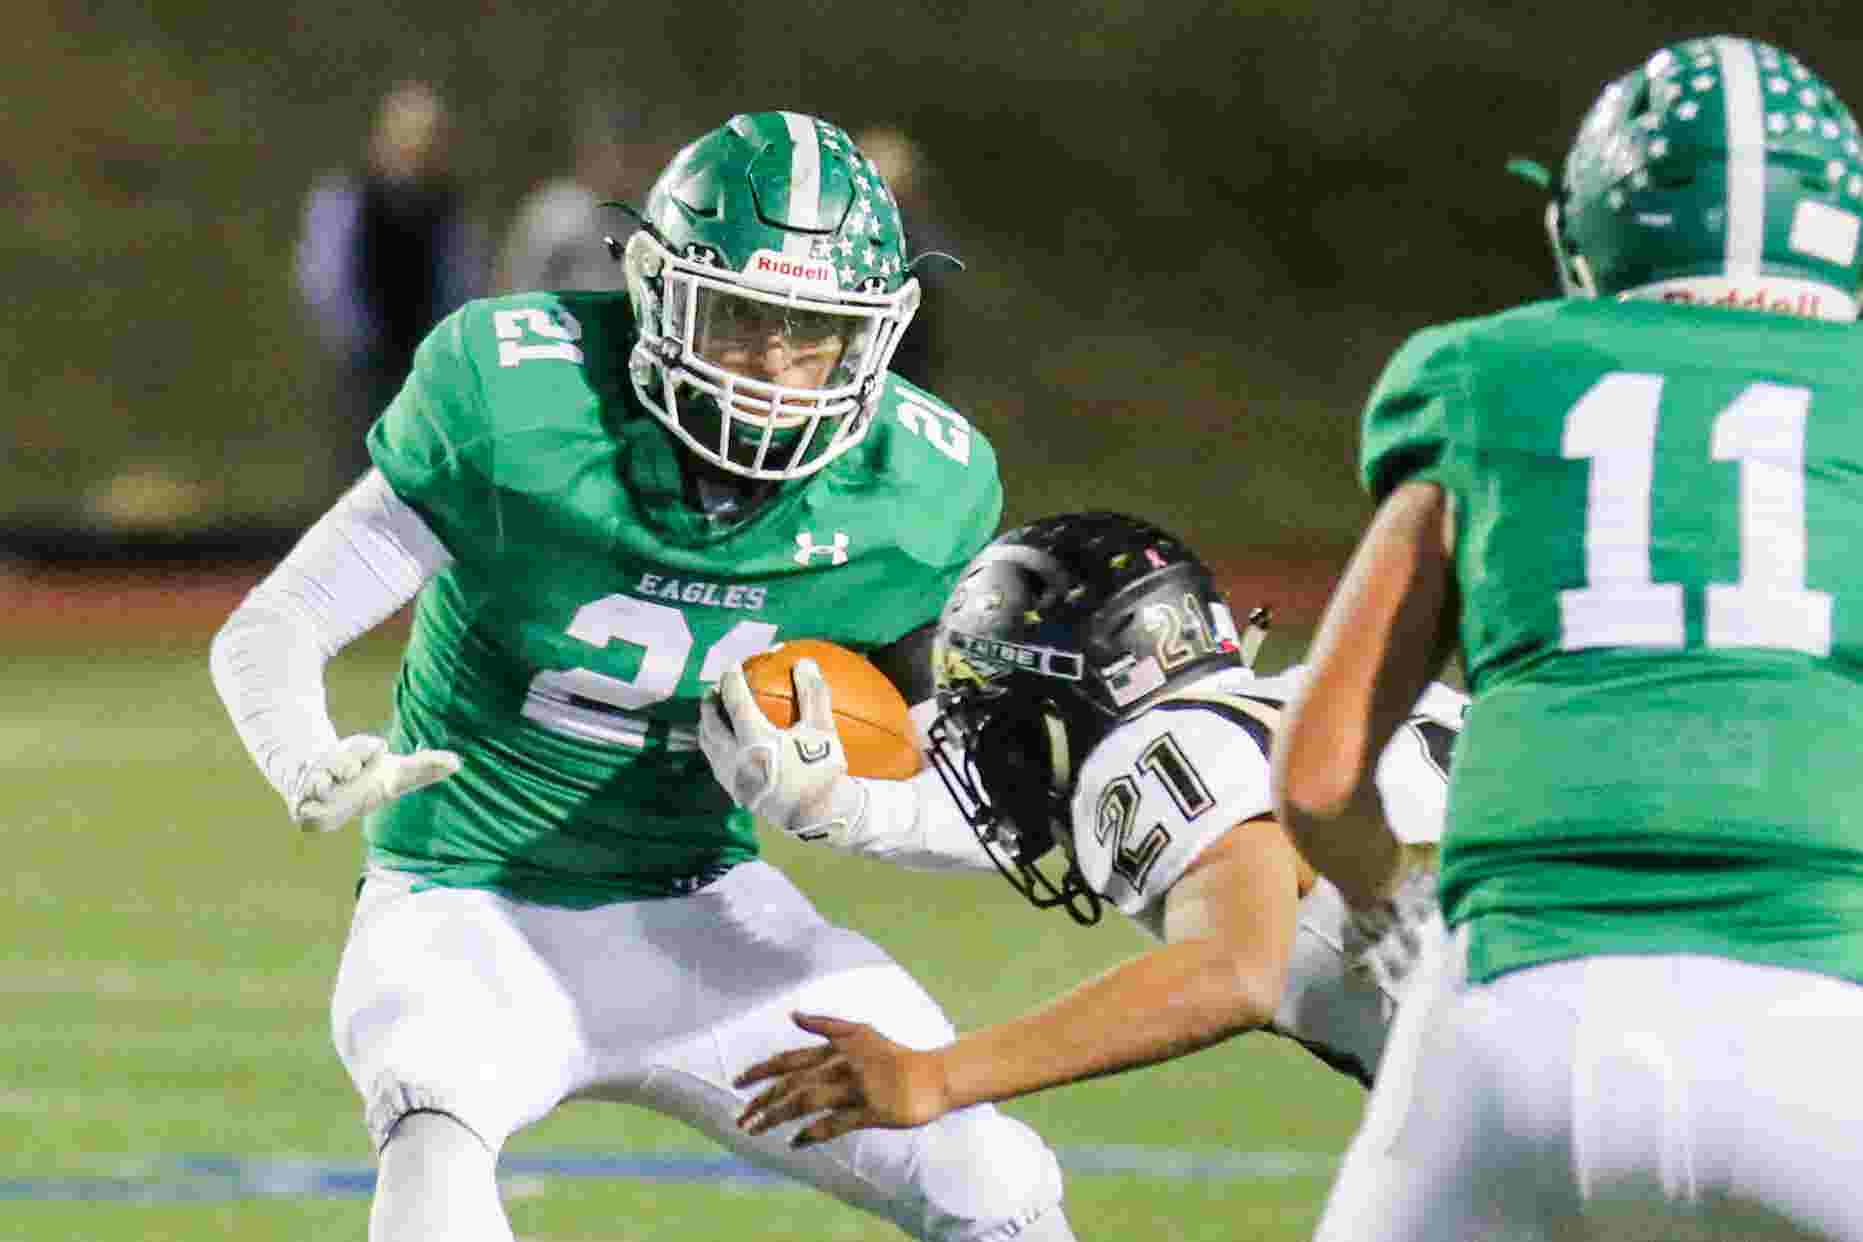 Winters Blizzards hungry for more playoff trophies in 2019 football season